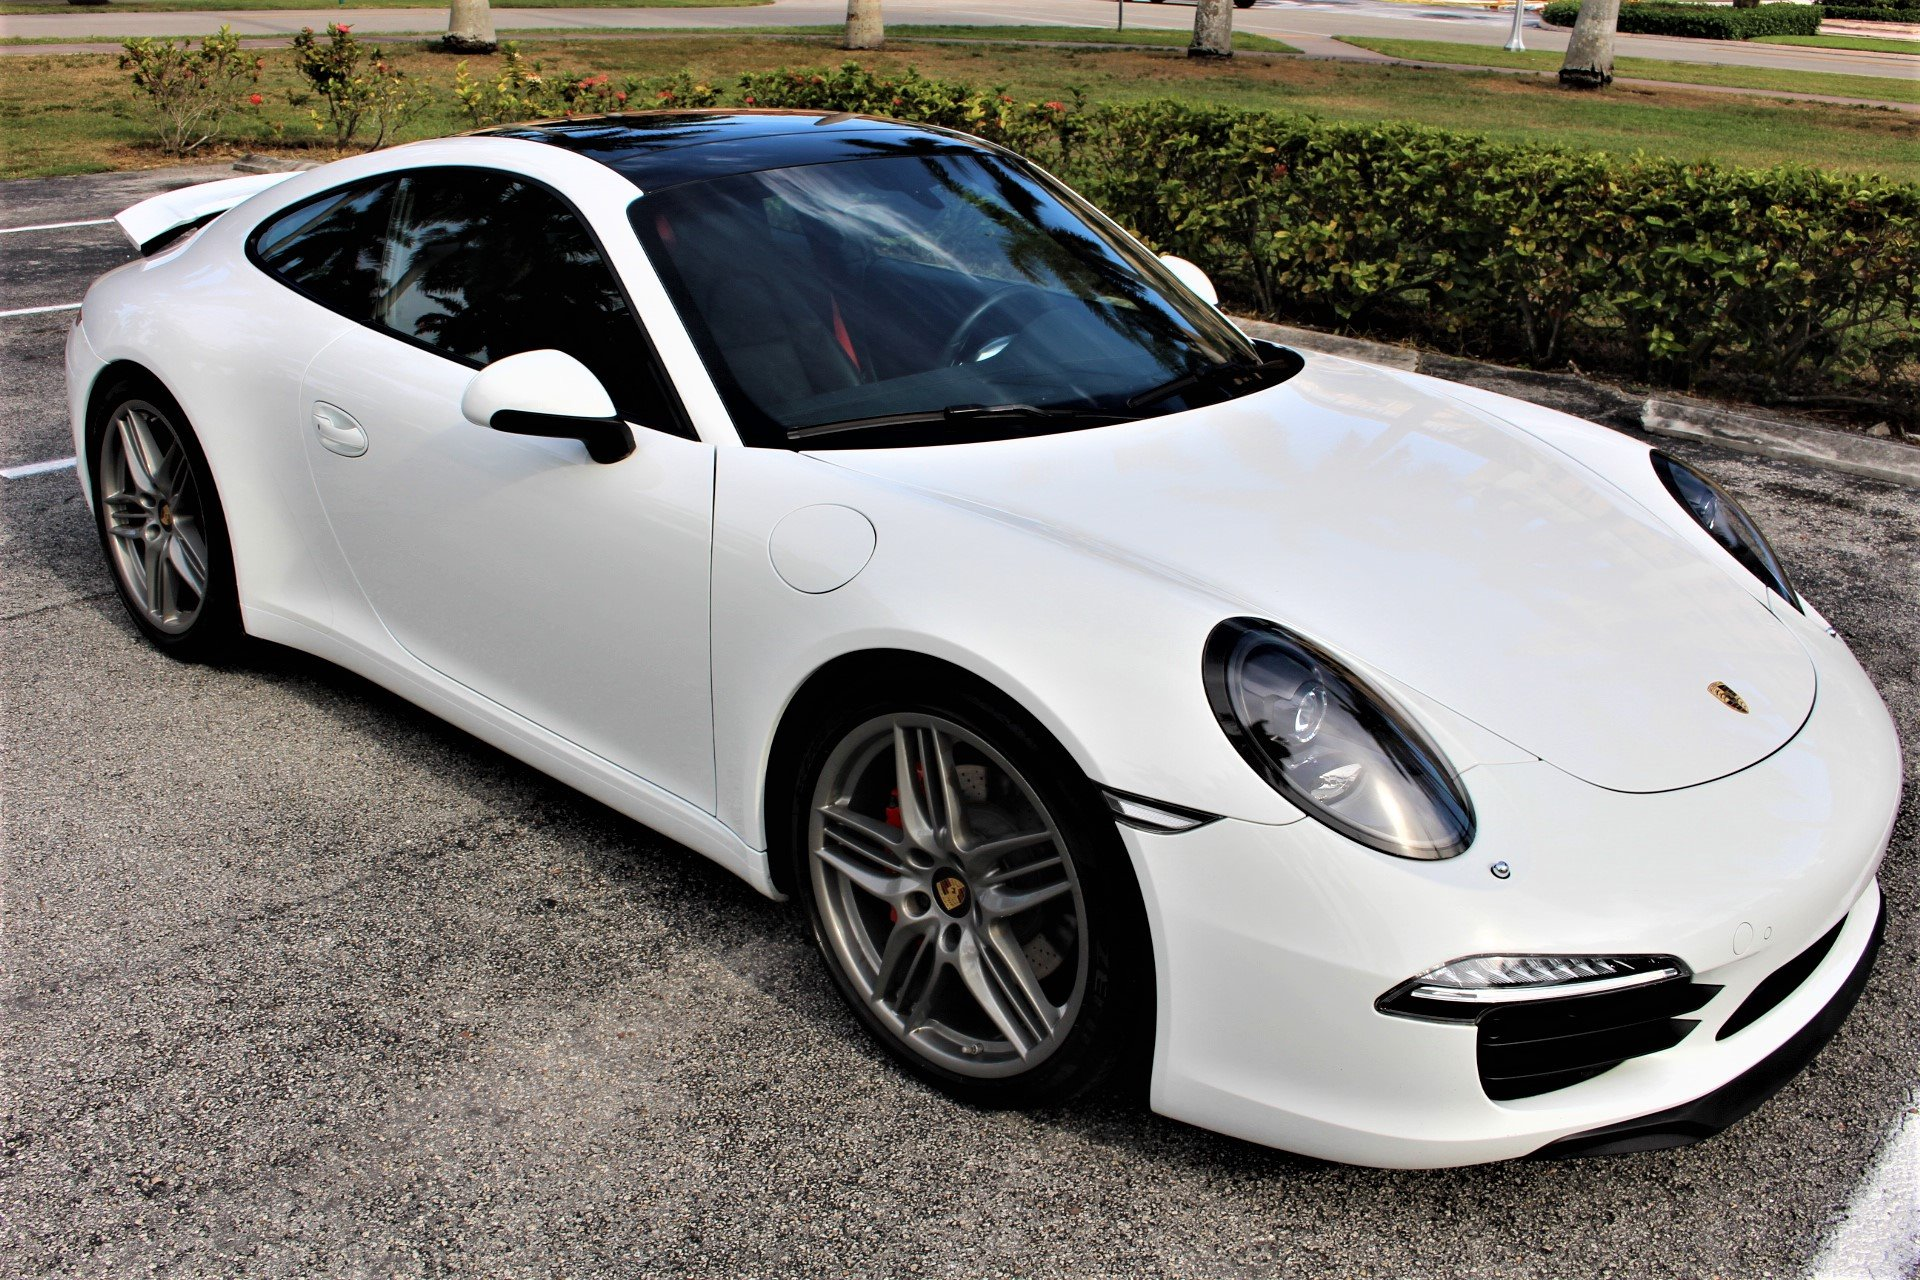 Used 2014 Porsche 911 Carrera S for sale Sold at The Gables Sports Cars in Miami FL 33146 1